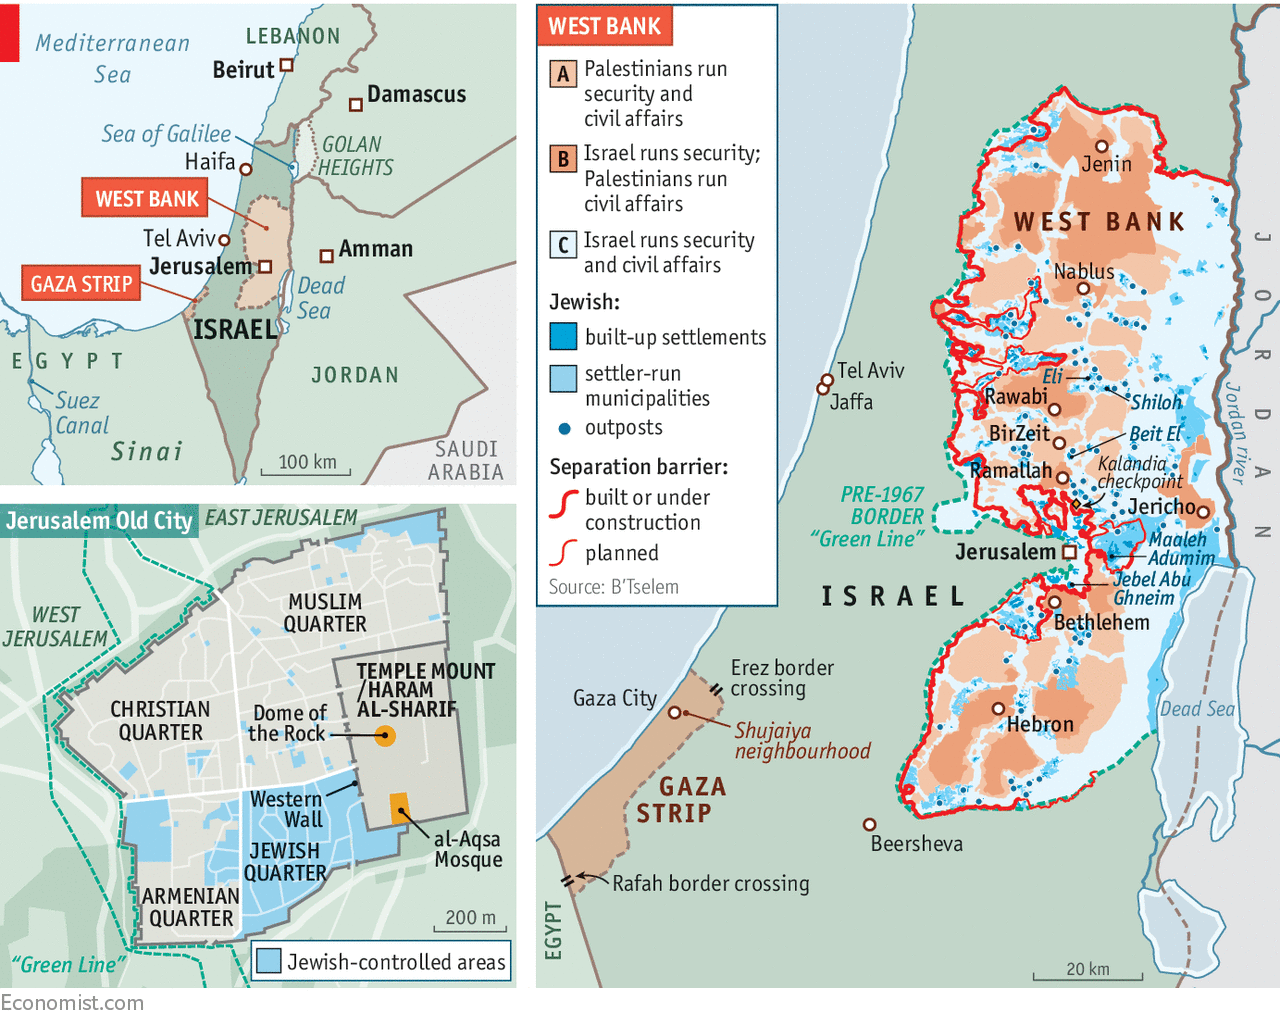 Map showing Israeli control of West Bank and Gaza